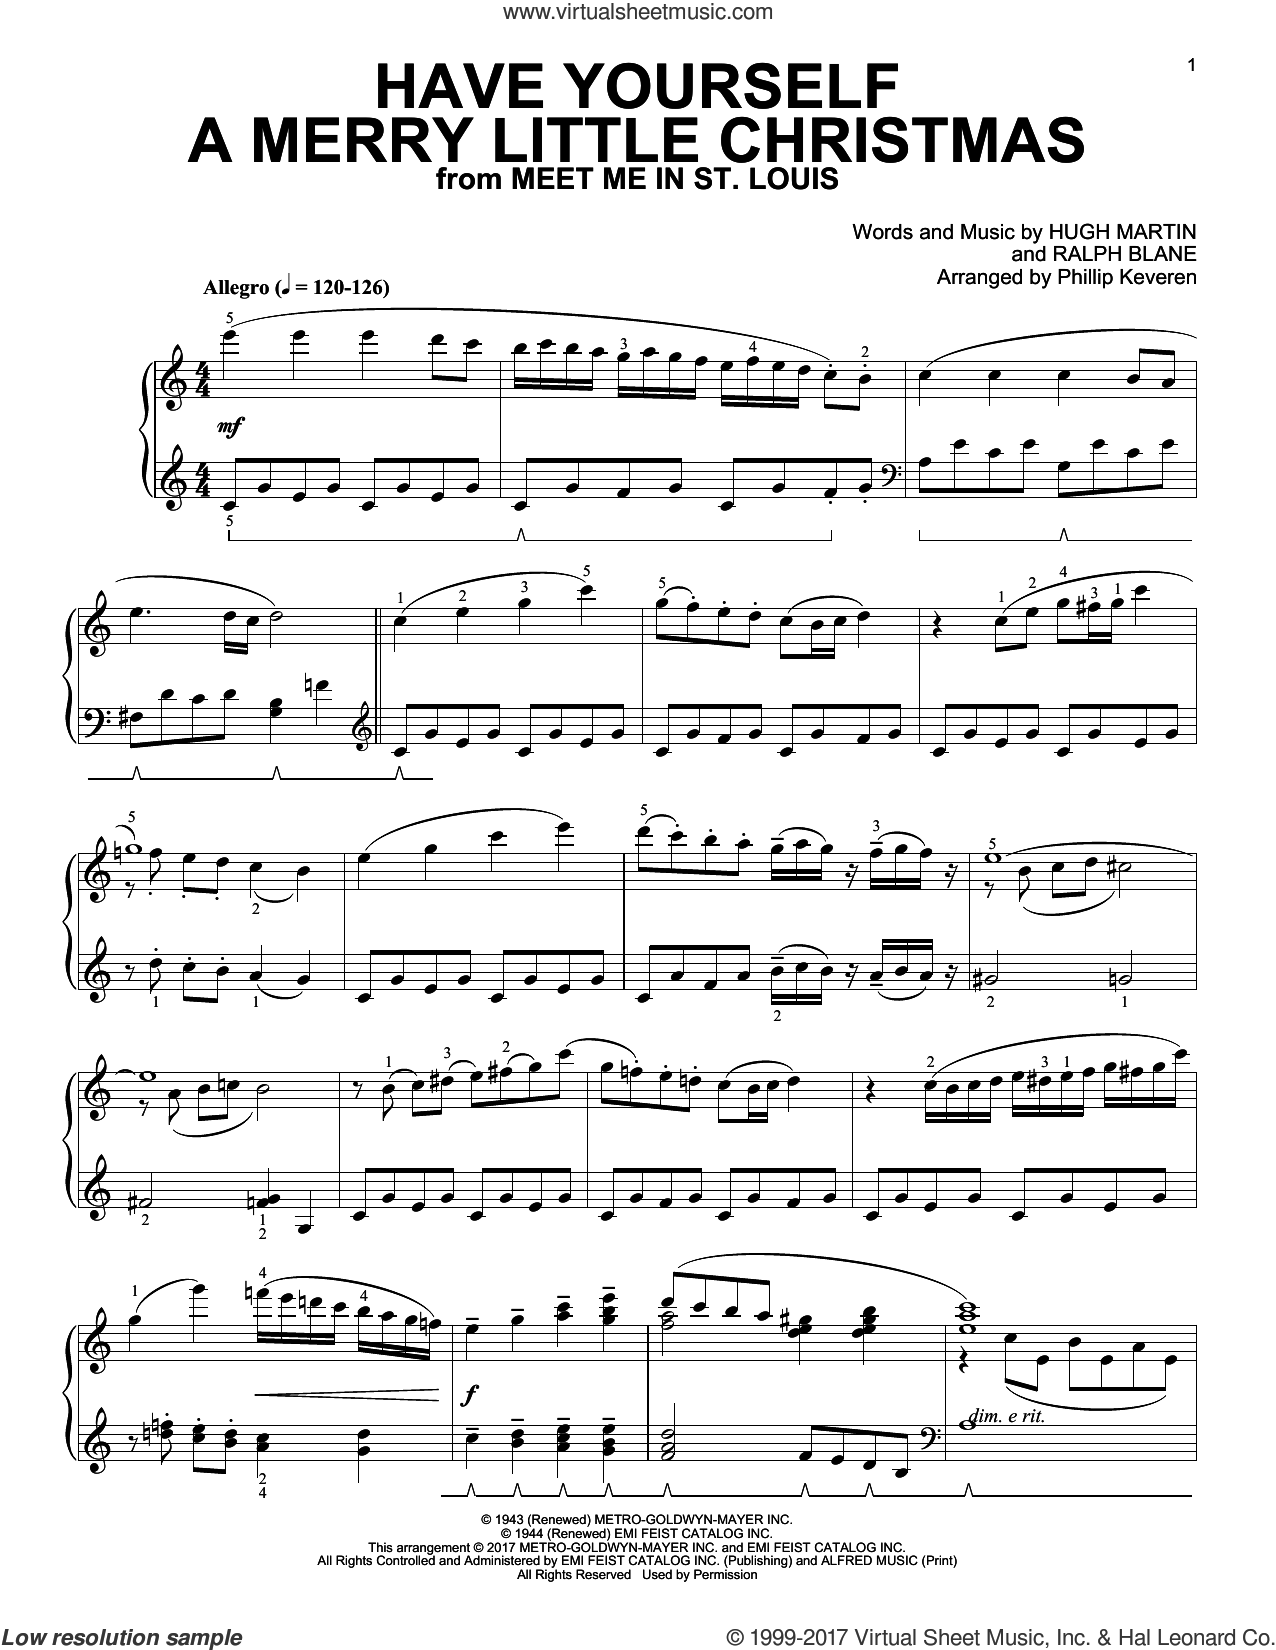 Have Yourself A Merry Little Christmas [Classical version] (arr. Phillip Keveren) sheet music for piano solo by Hugh Martin, Phillip Keveren and Ralph Blane, intermediate skill level